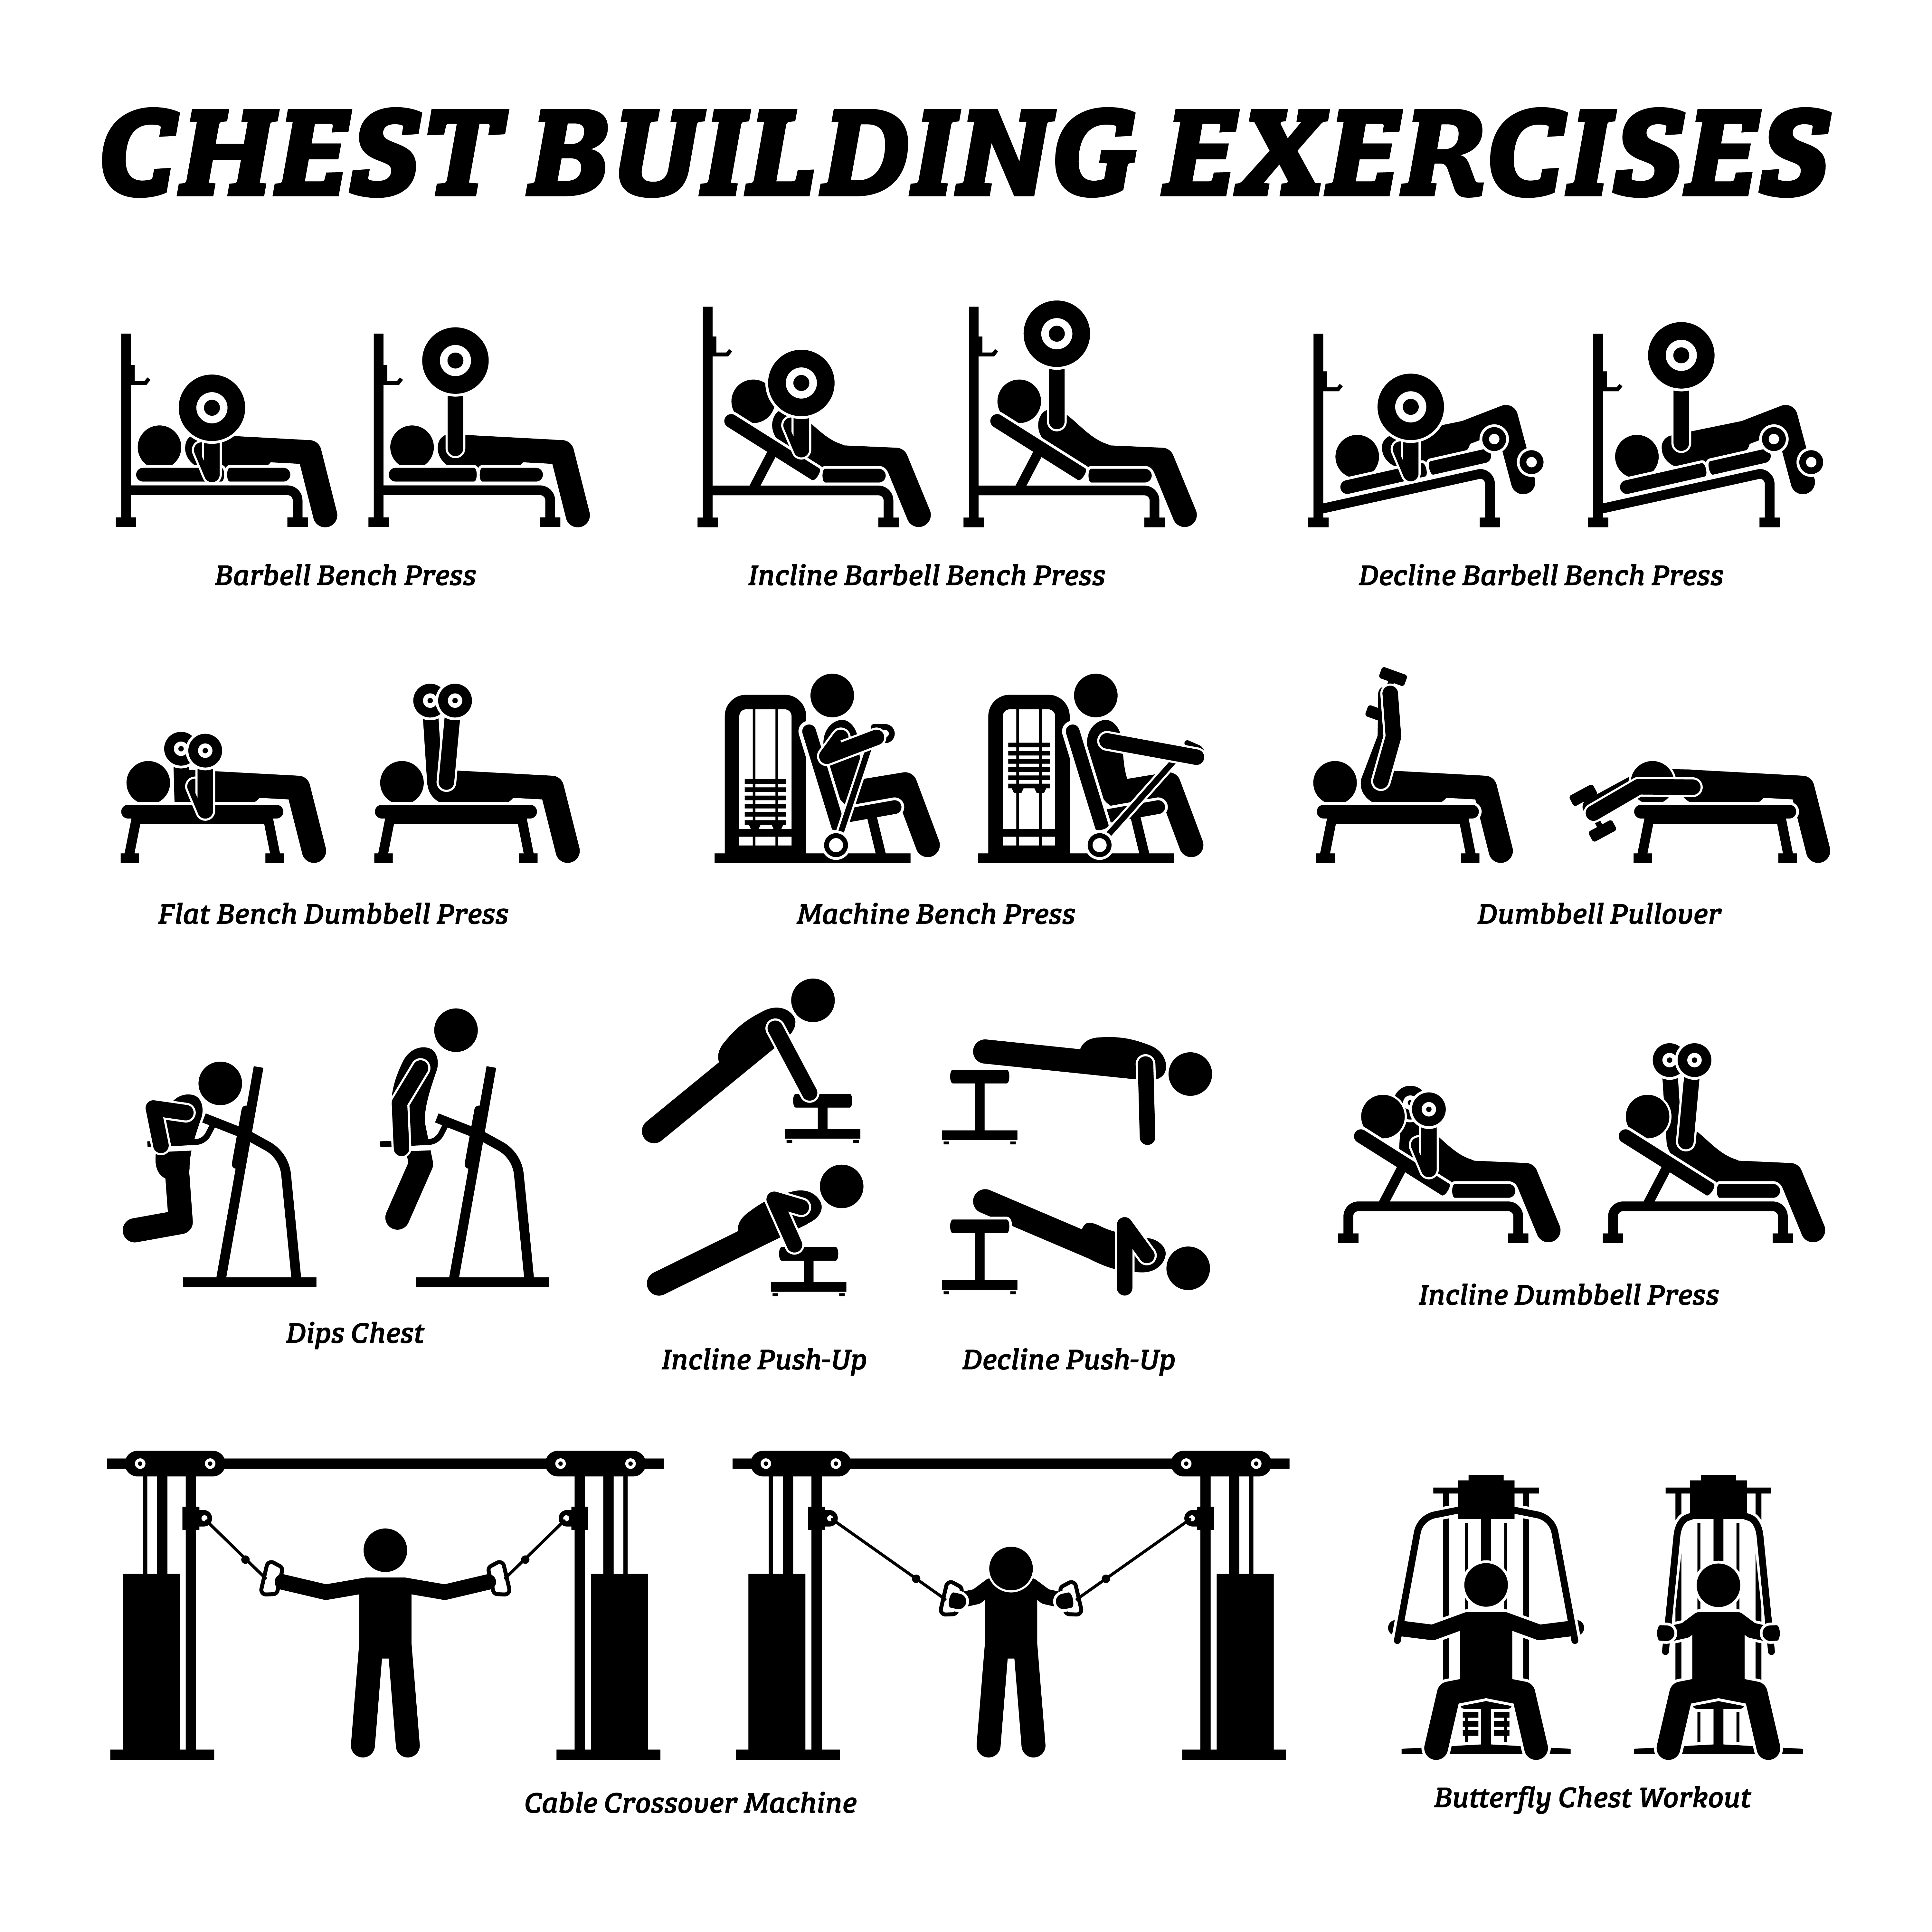 Chest dips can be an awesome exercises to add to your chest-workout routine!